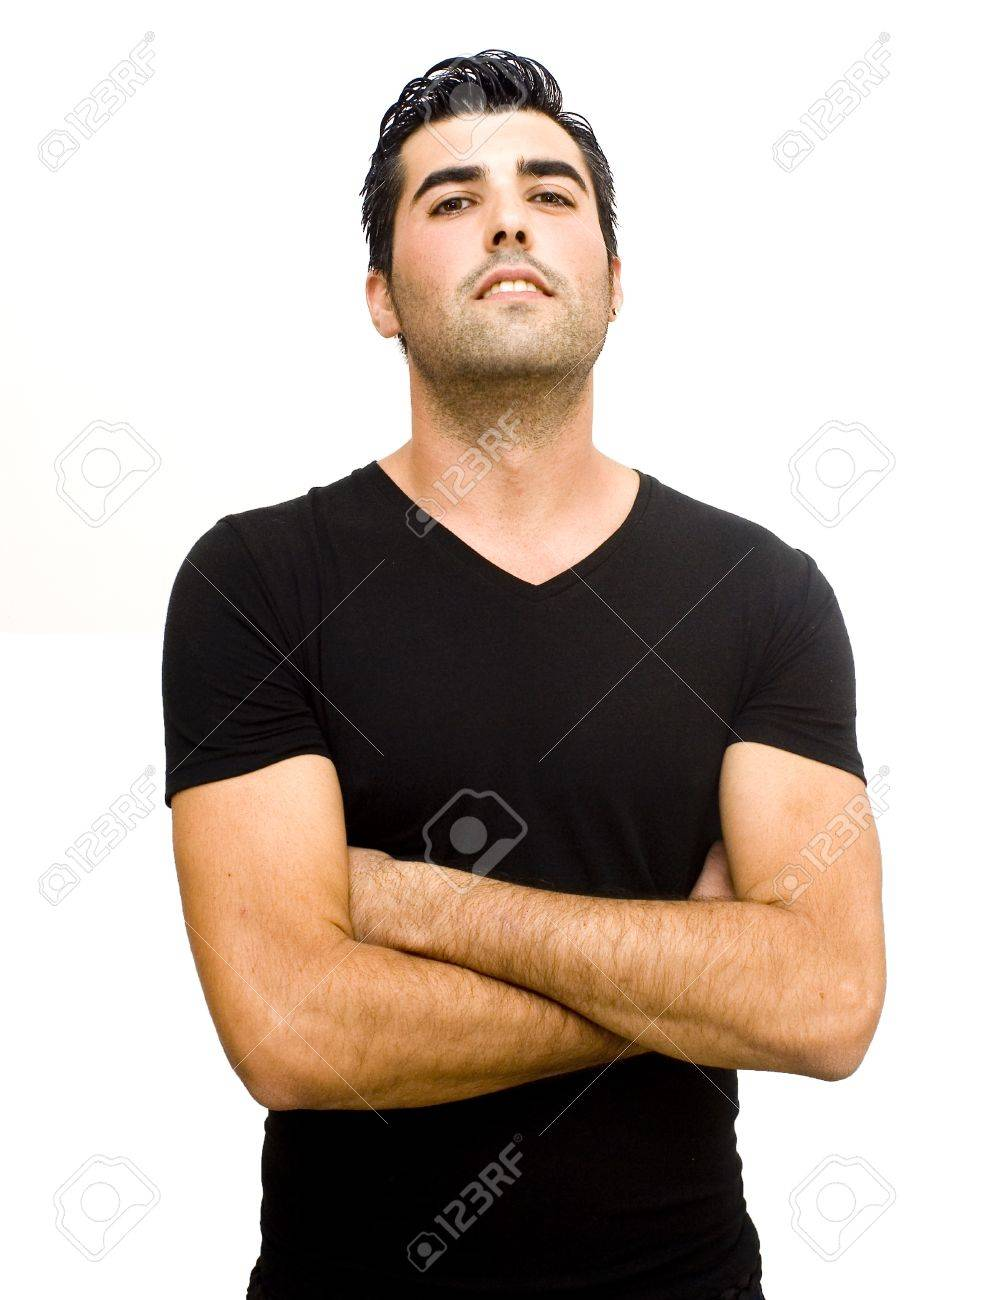 Handsome Guy With Black Shirt With Arms Crossed Over His Chest ...